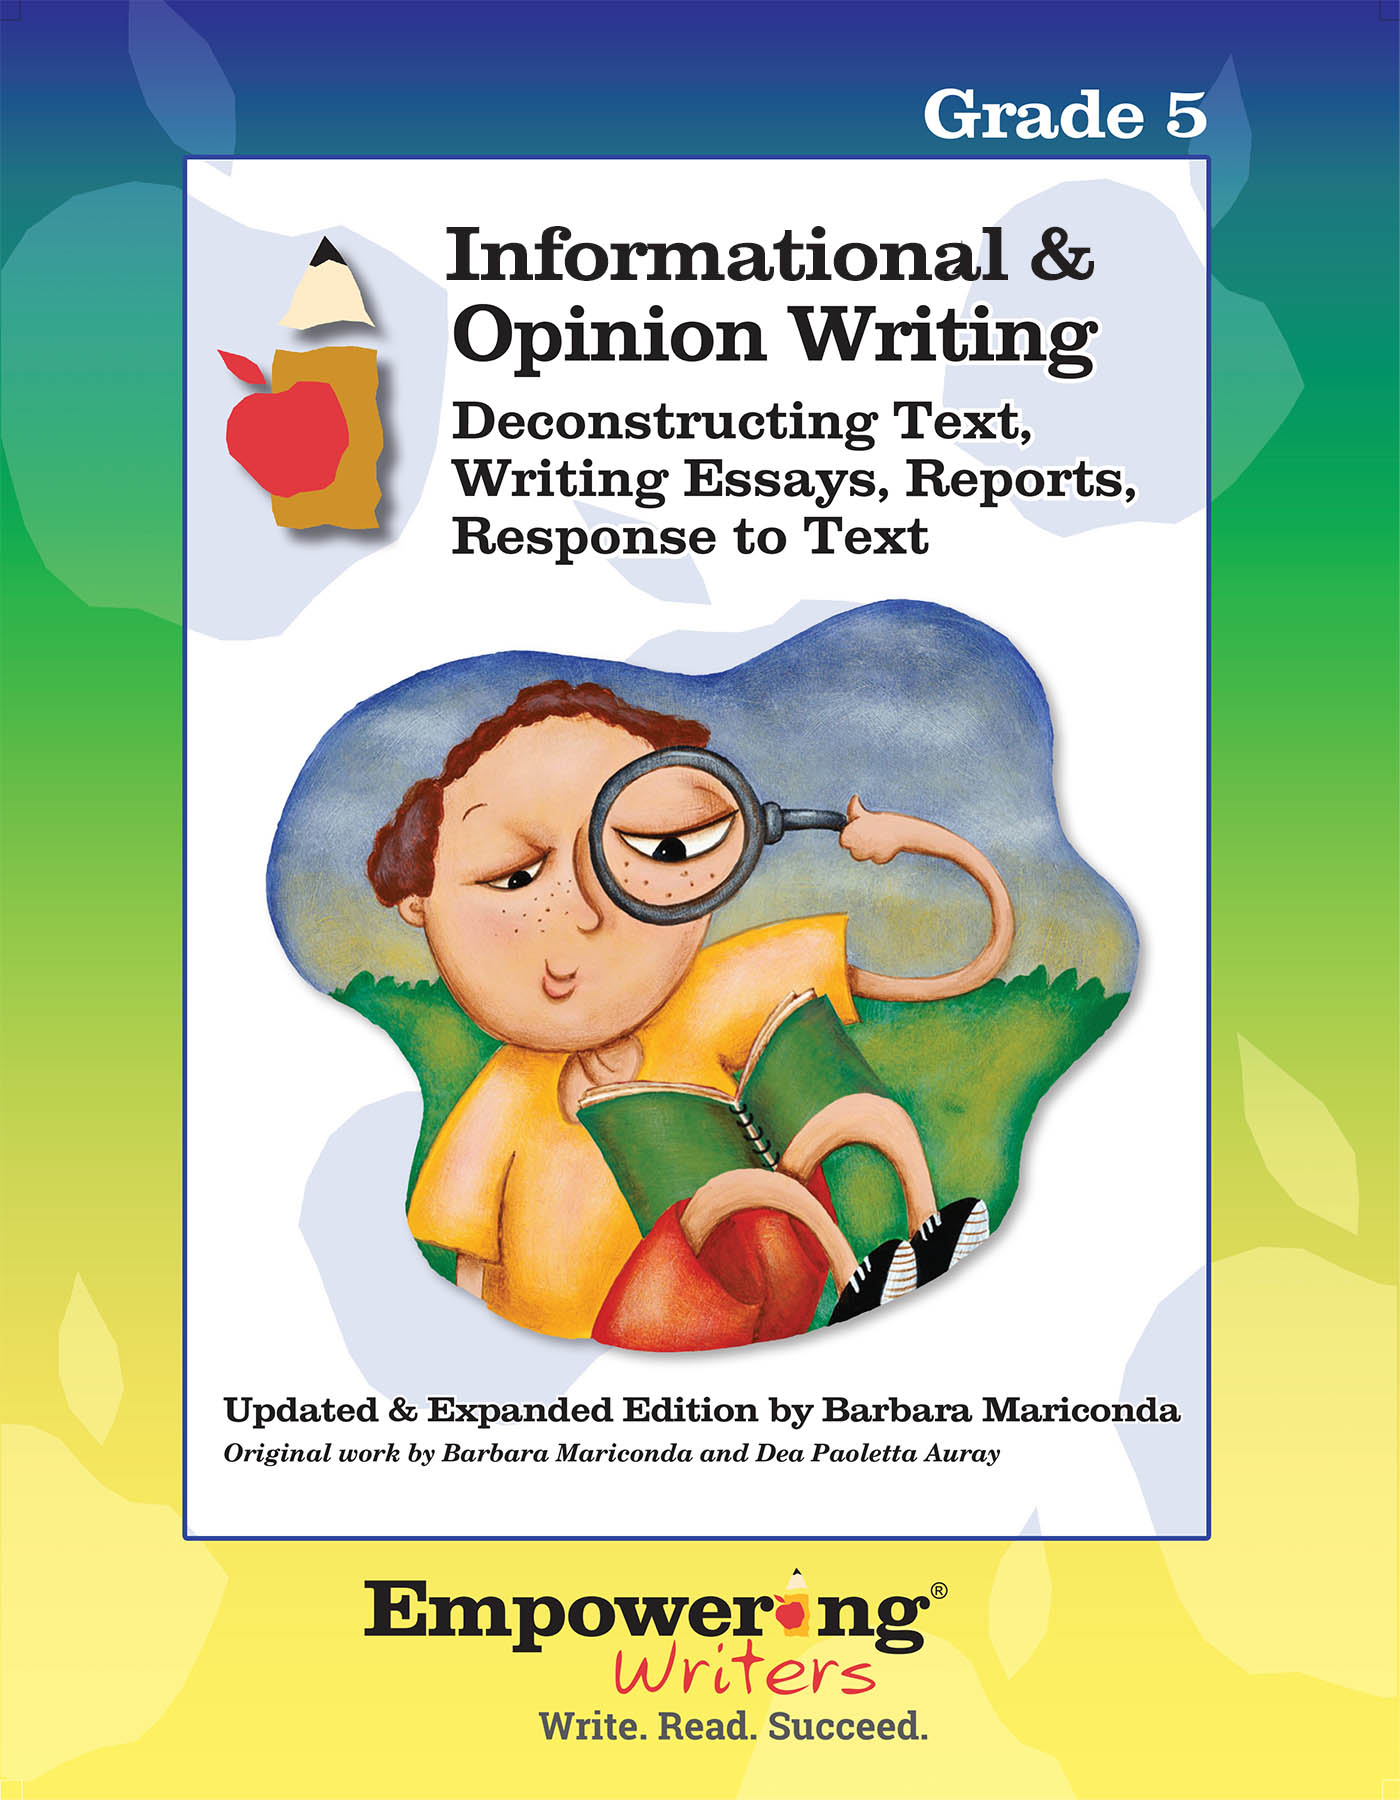 Grade 5 Informational Opinion Guide Covers New Logo 5.18.18-1